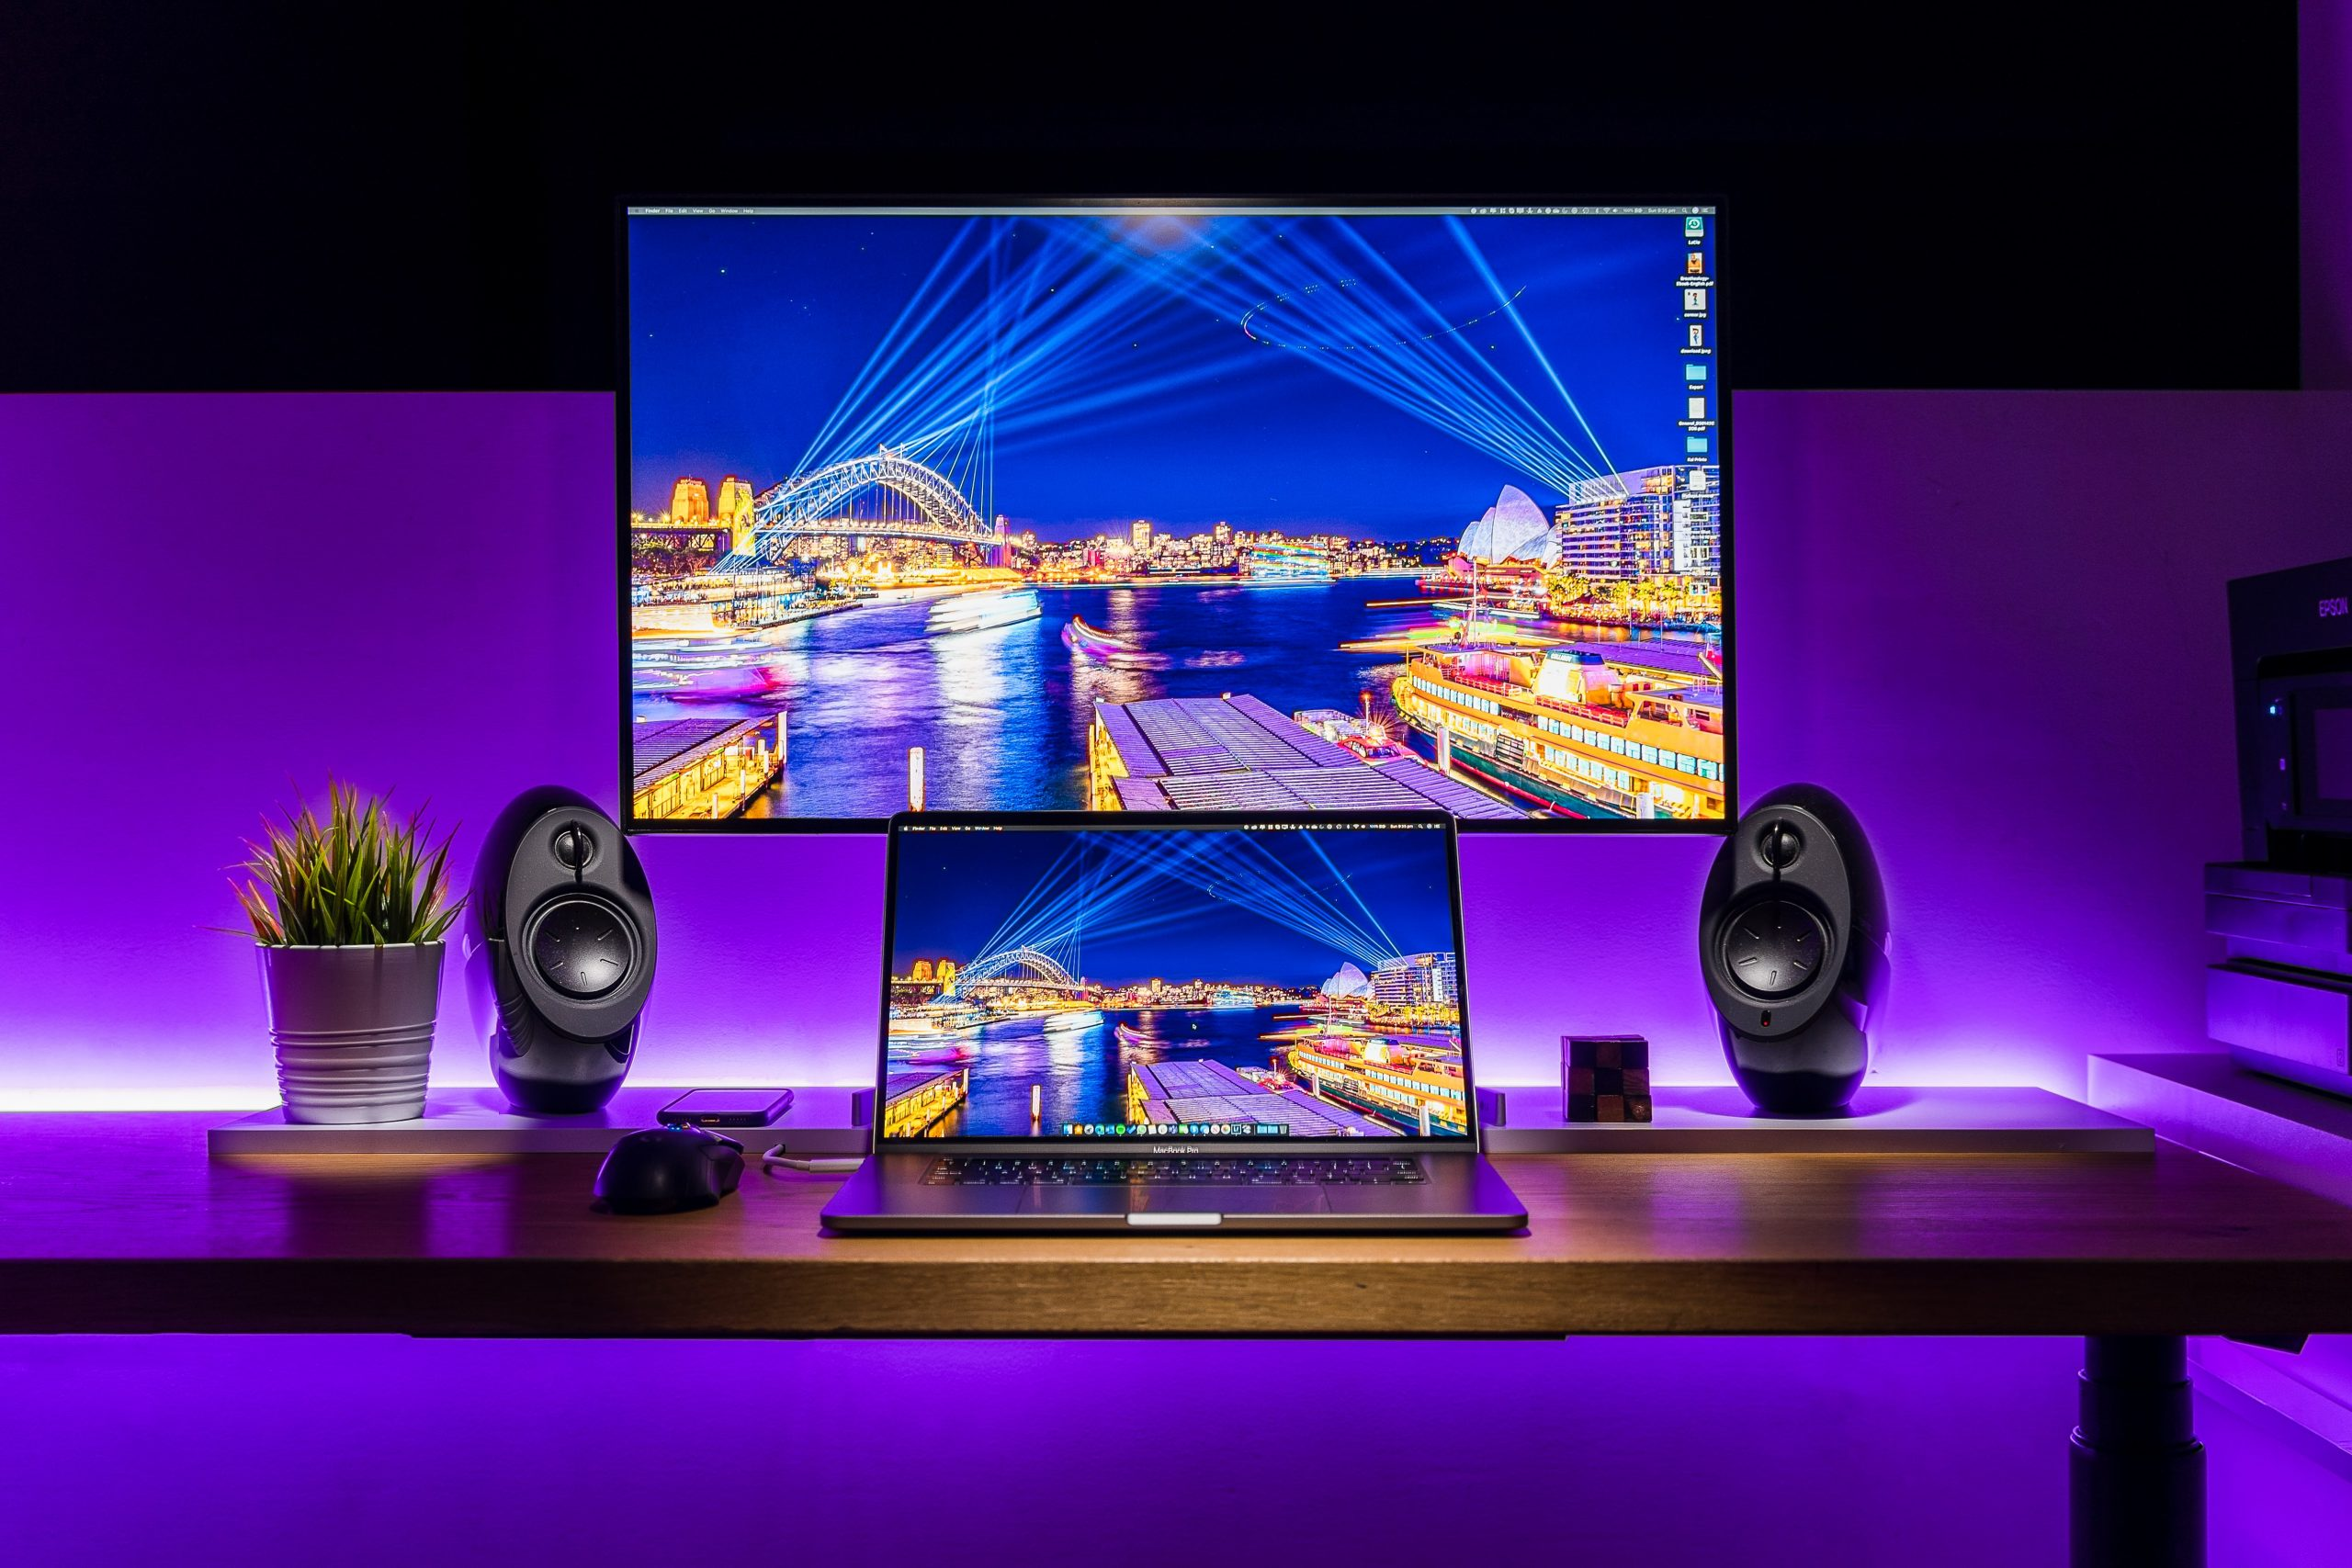 How to set up speakers for PC's